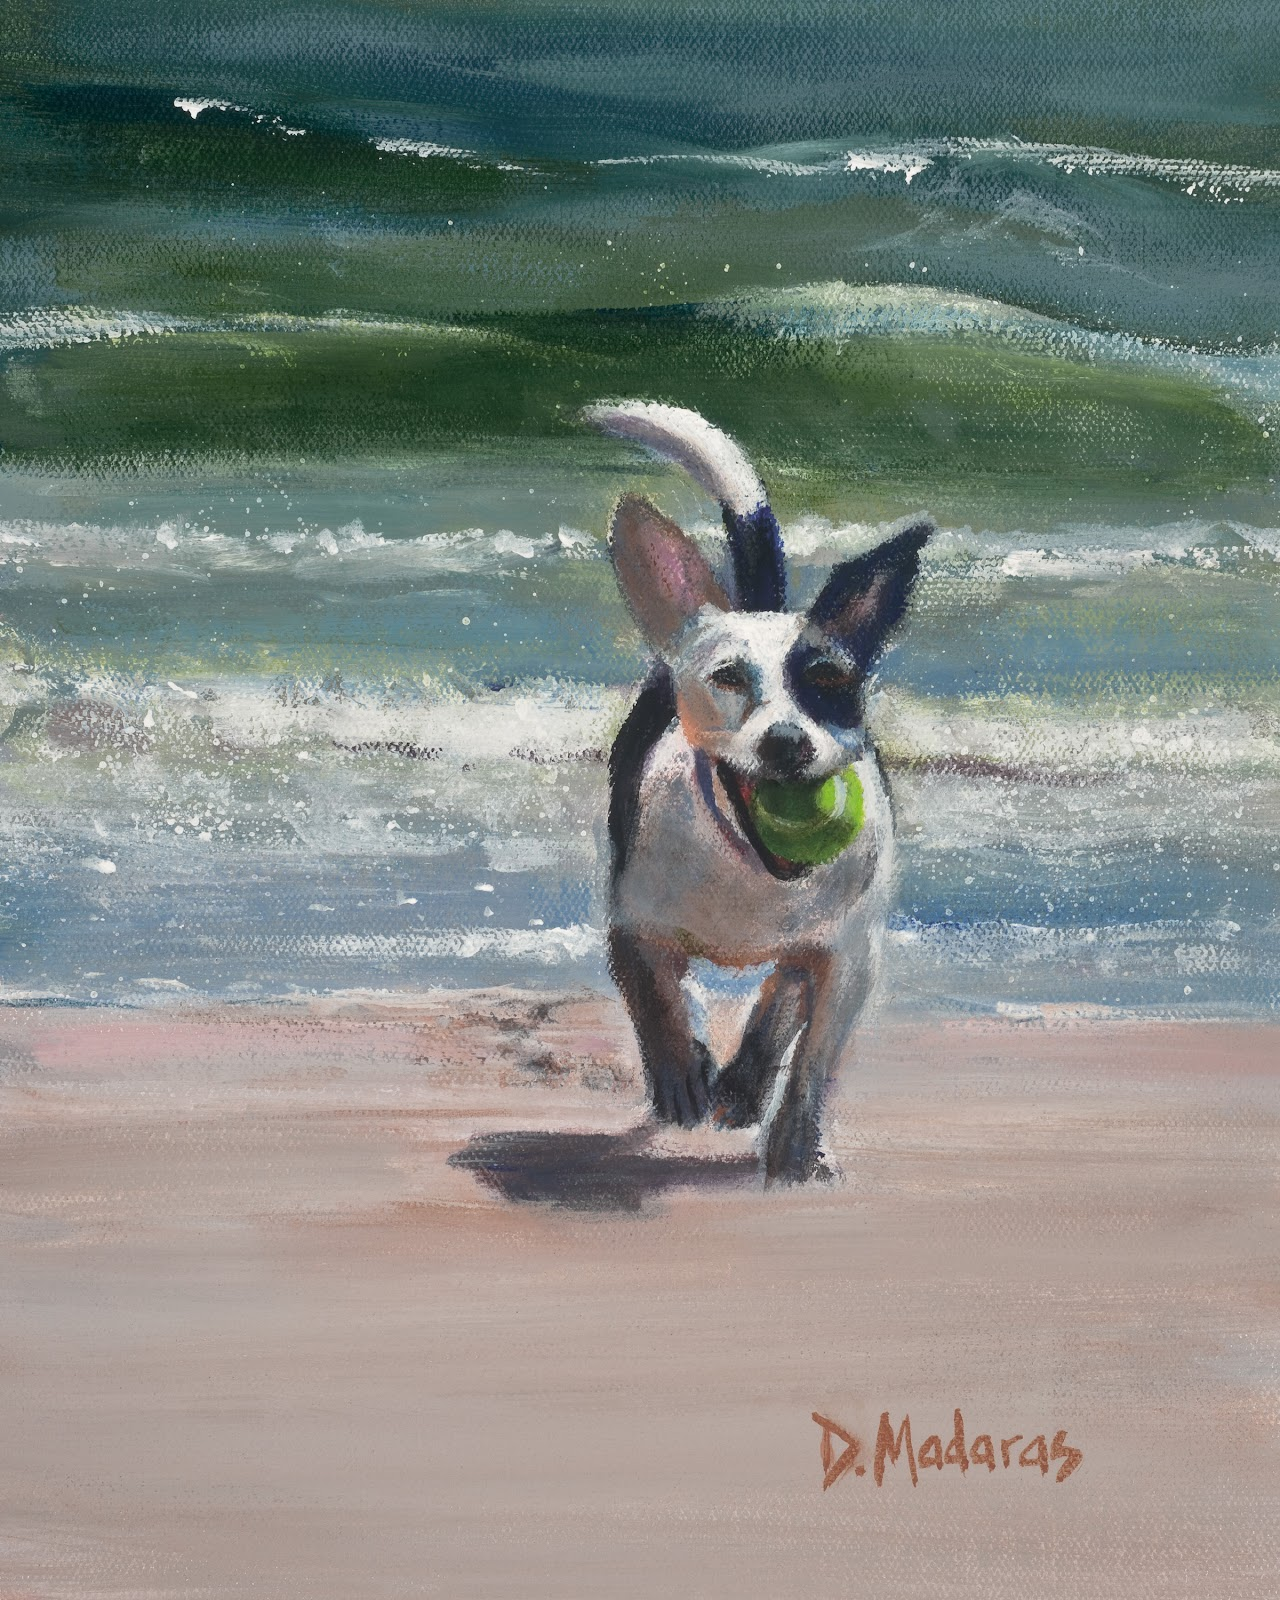 DOG ON THE BEACH by Diana Madaras.jpg